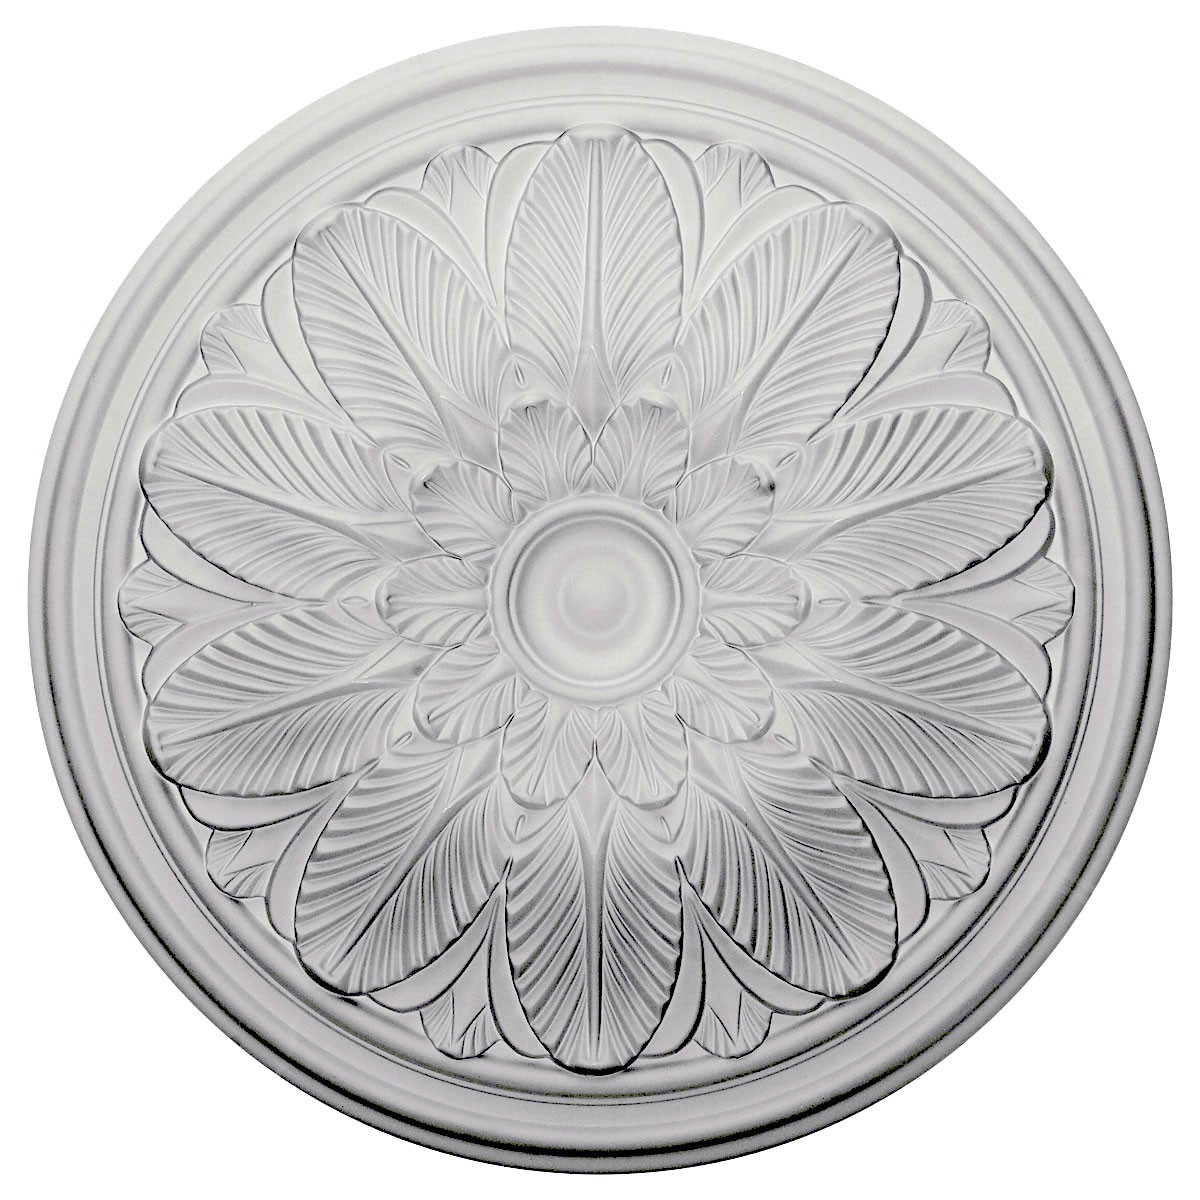 """EM-CM22BO - 22 5/8""""OD x 1 3/4""""P Bordeaux Ceiling Medallion (Fits Canopies up to 3 1/4"""")"""